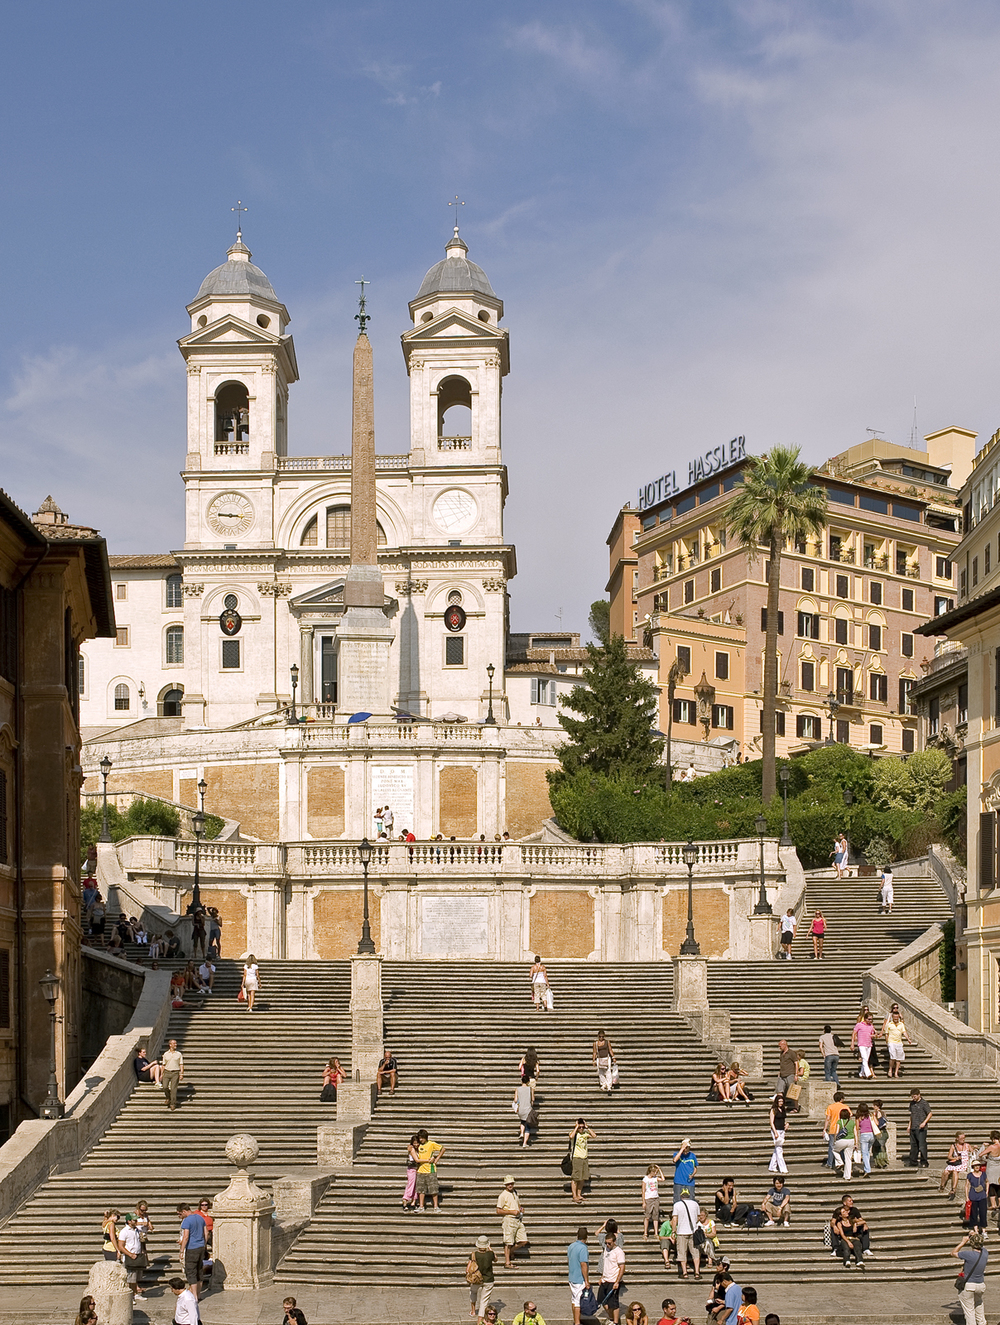 A view of the Spanish Steps and the Hassler